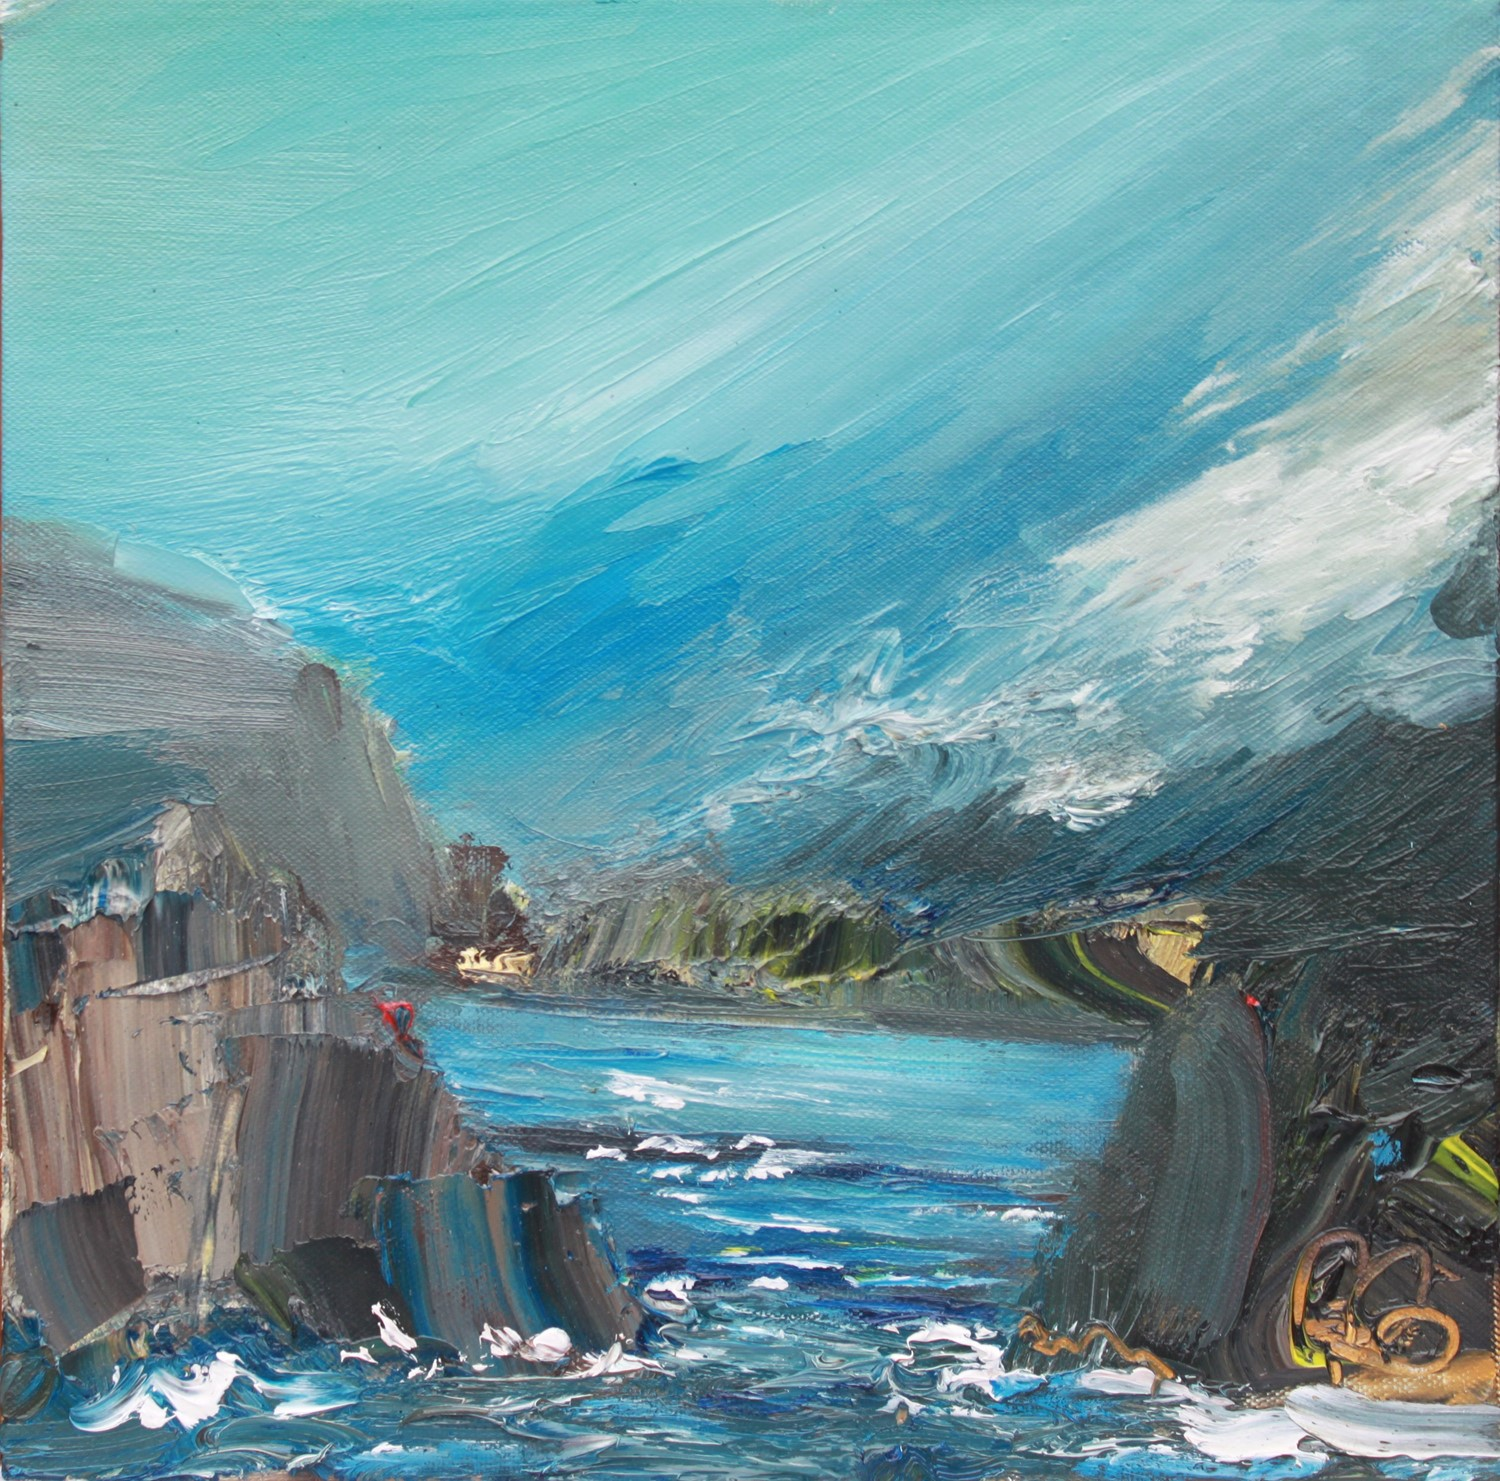 'Passing through the Isles' by artist Rosanne Barr